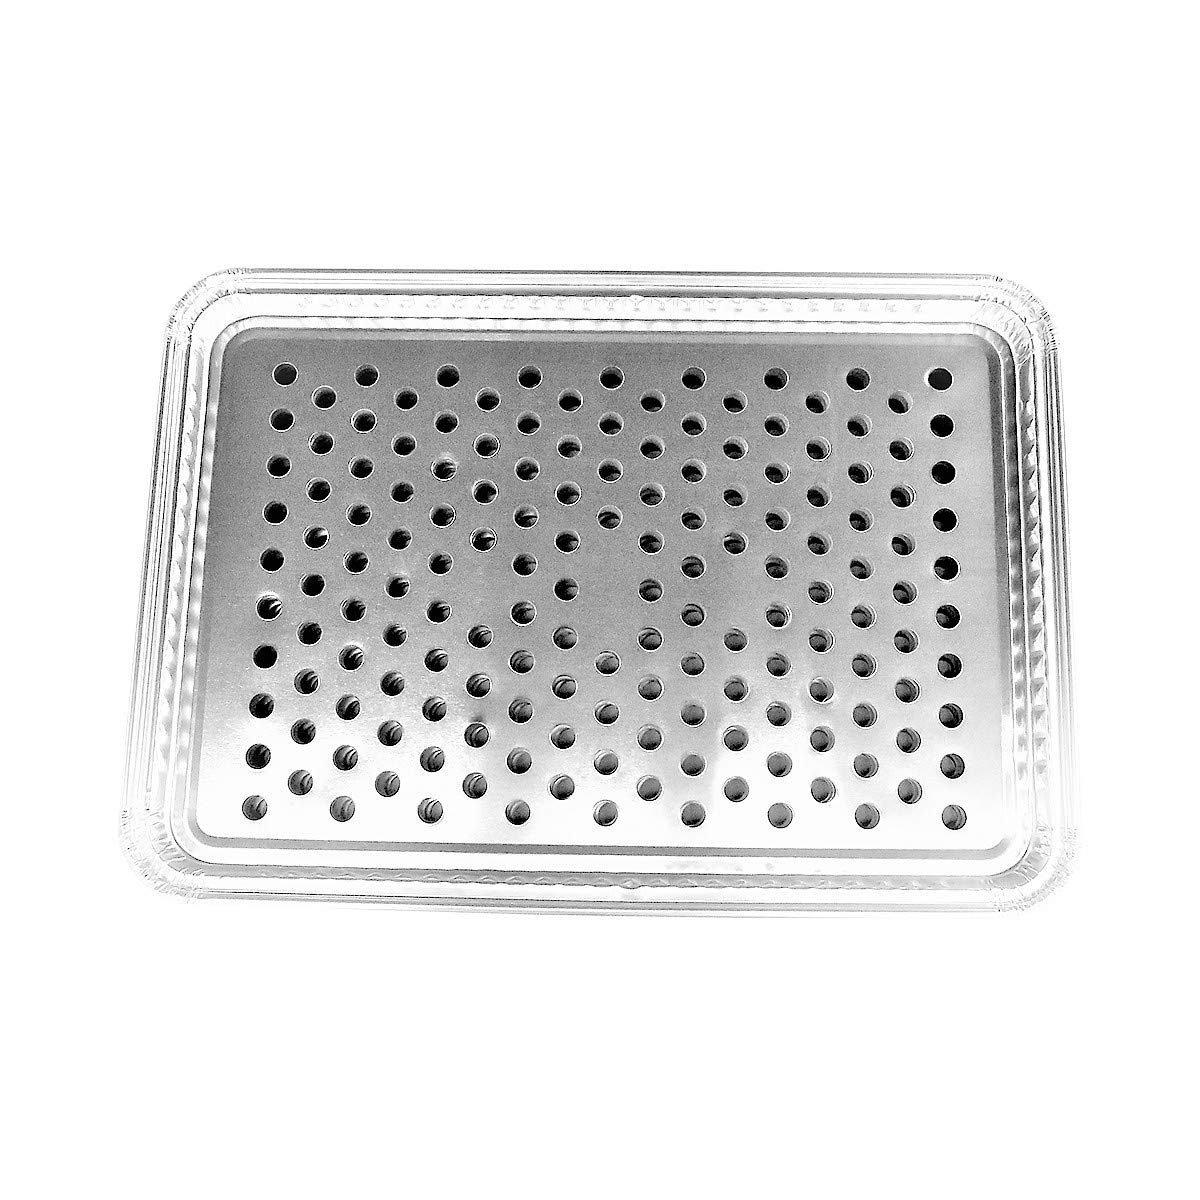 KitchenDance Disposable Aluminum Grill Toppers, Large Size 16'' x 11'' #7200 (100)